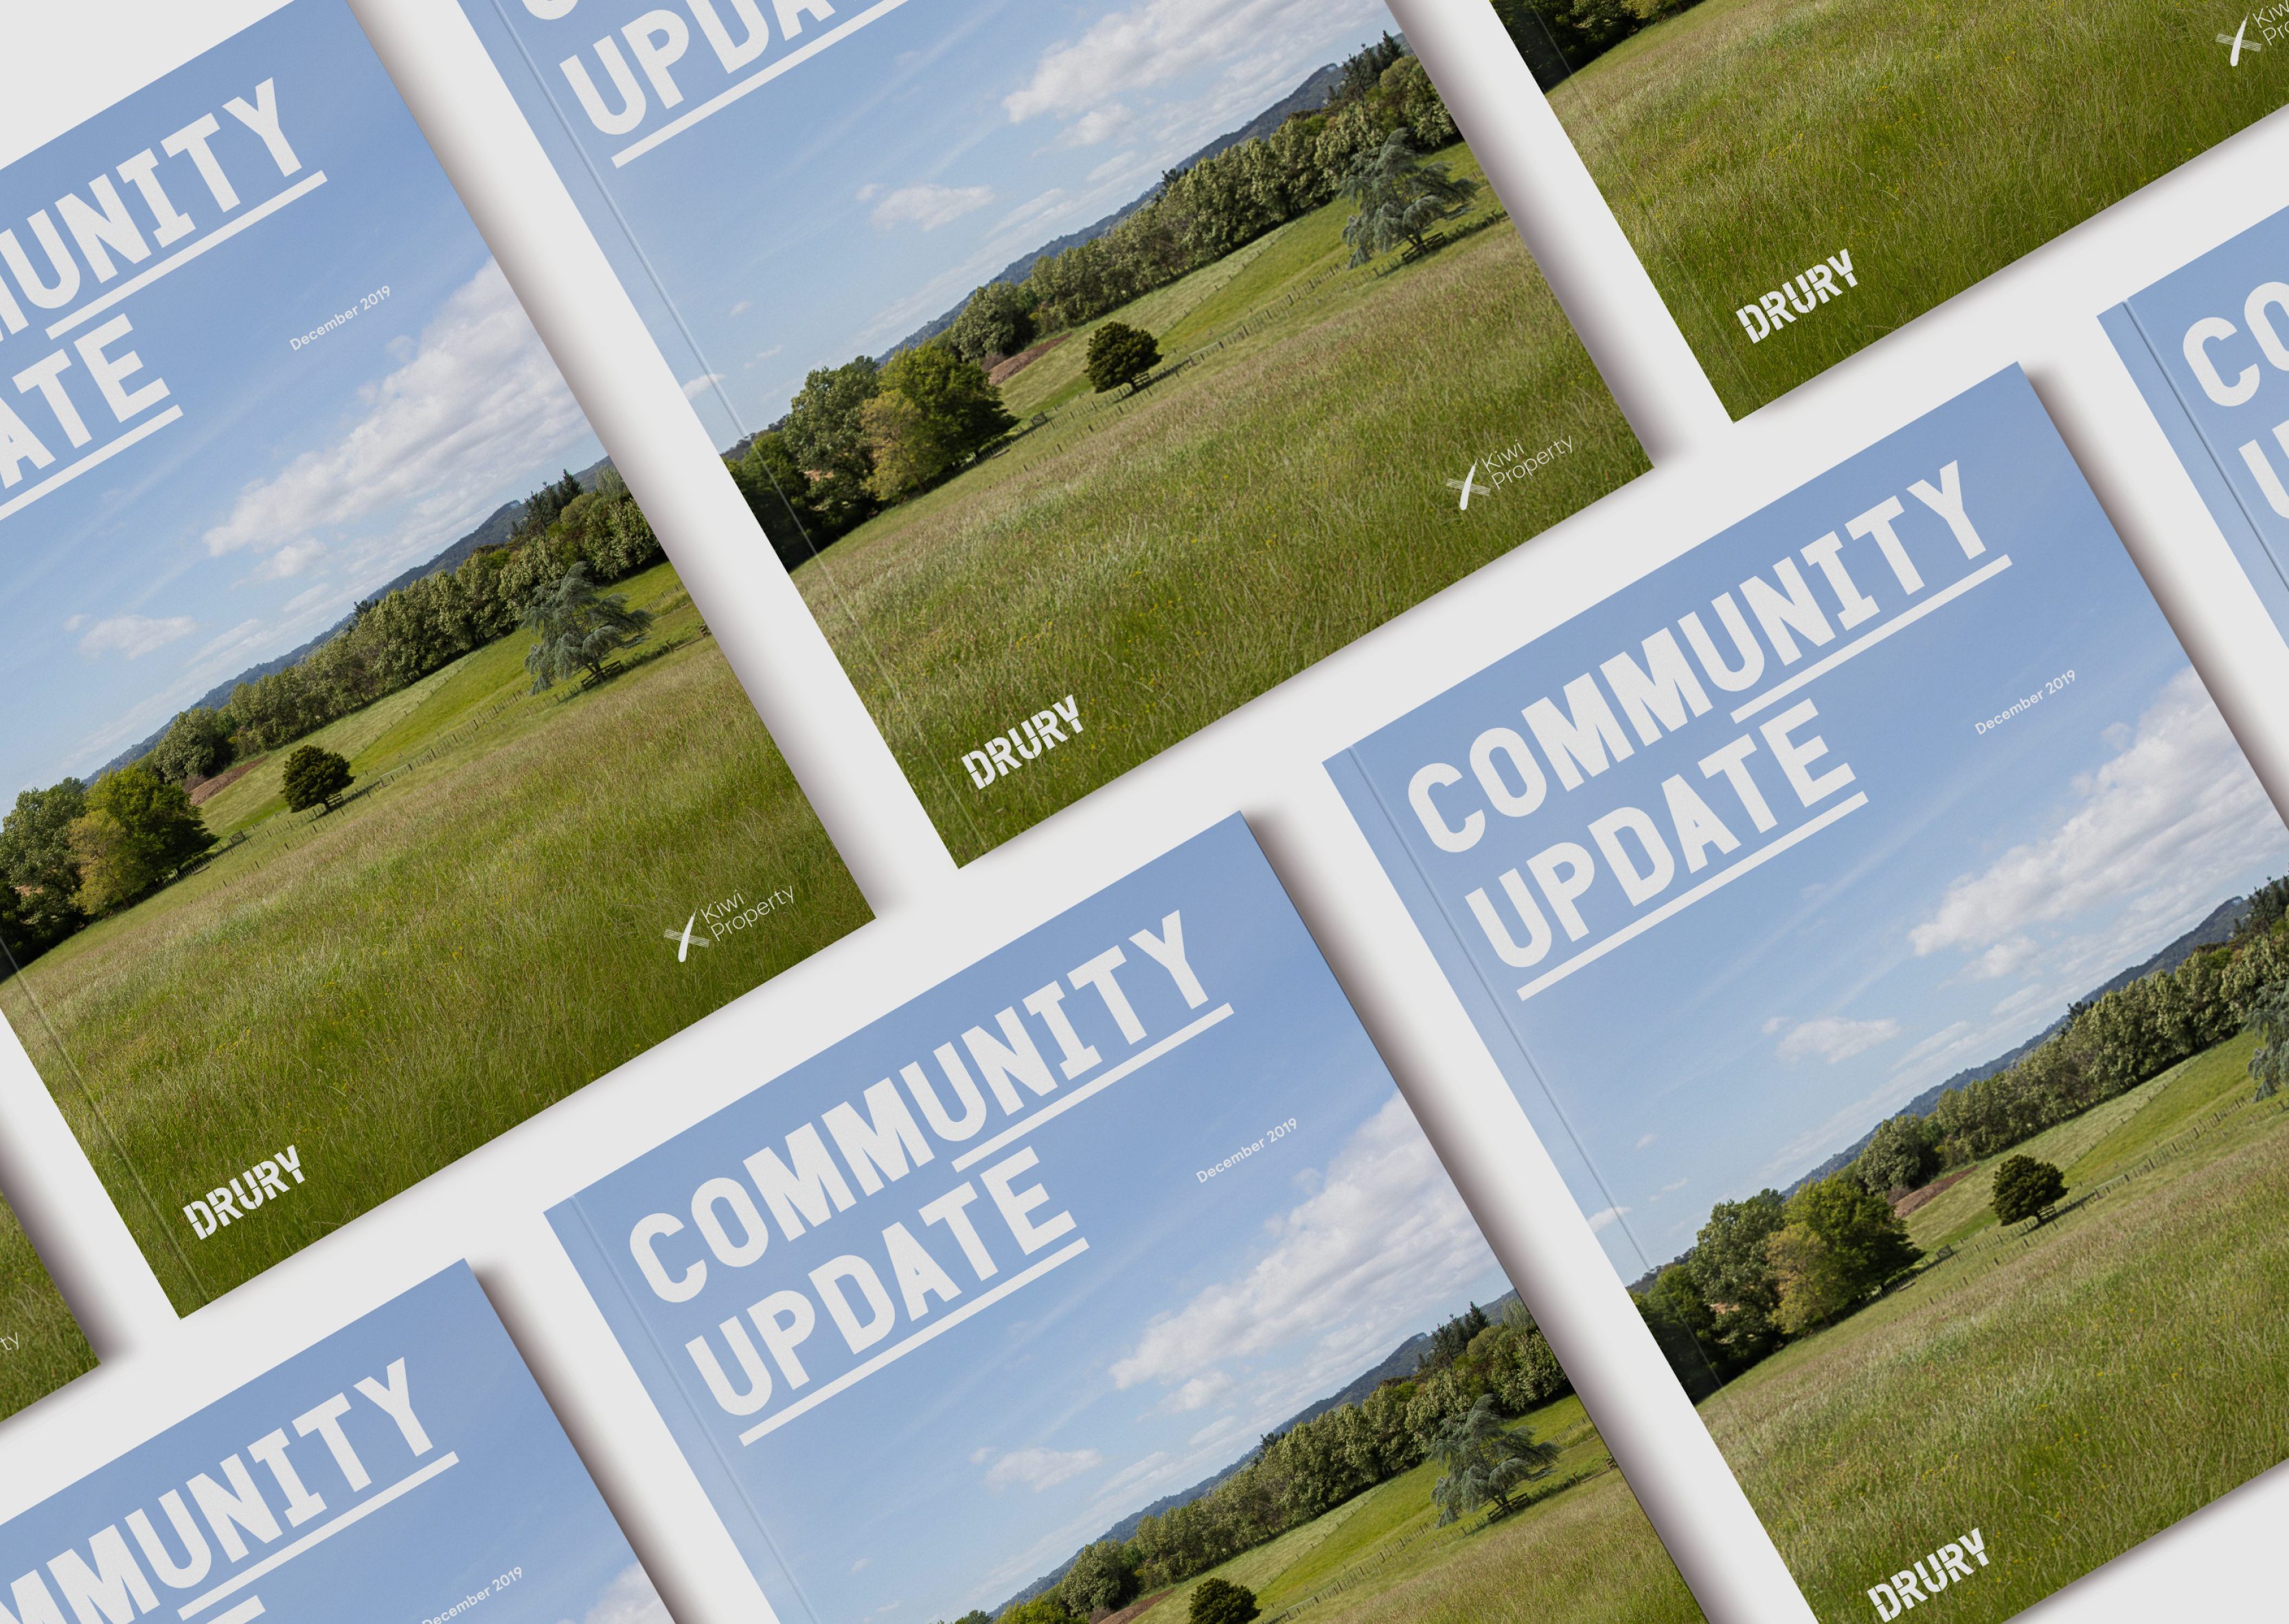 A multiple layout of Drury community development communications Brochure covers, all featuring idyllic green pasture